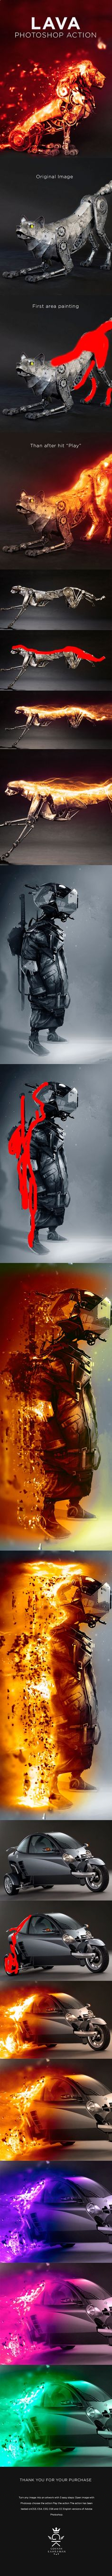 Lava #Photoshop Action - Photo Effects Actions Download here: graphicriver.net/...